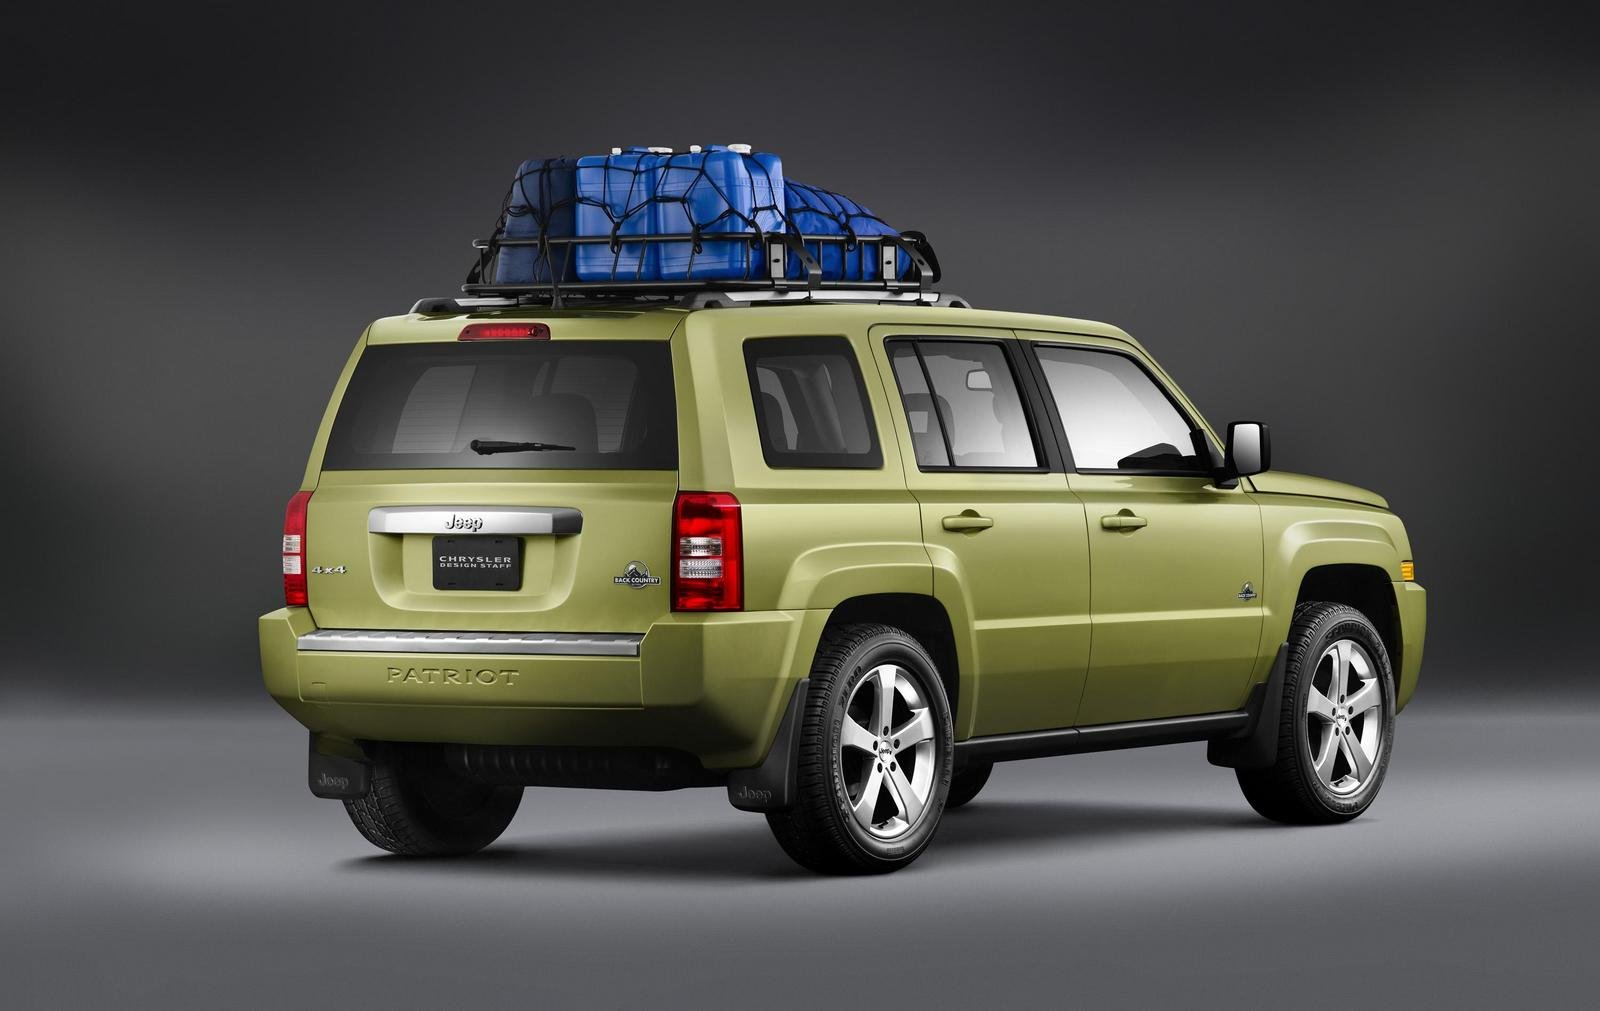 2008 jeep patriot back country concept picture 265114. Black Bedroom Furniture Sets. Home Design Ideas